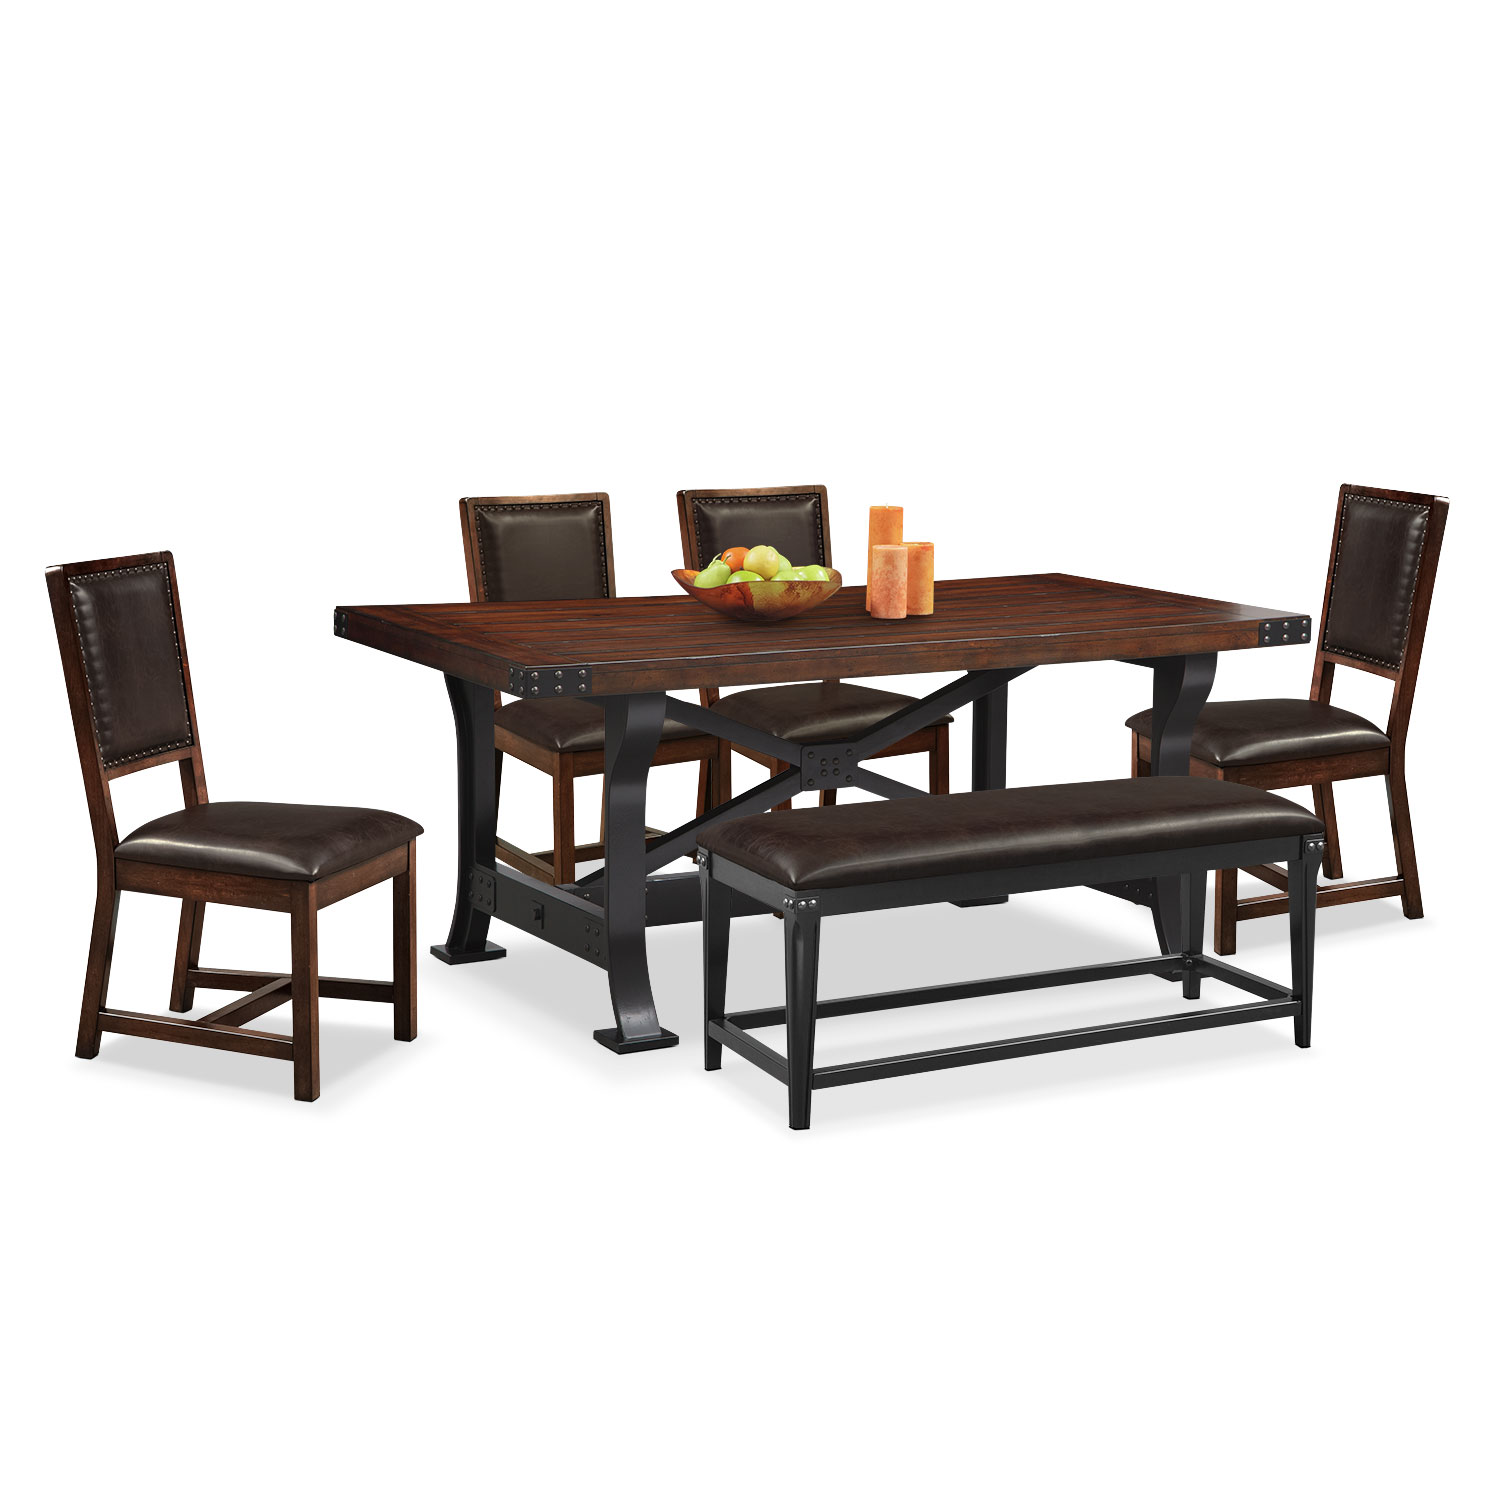 newcastle table , 4 chairs and bench - mahogany | value city furniture